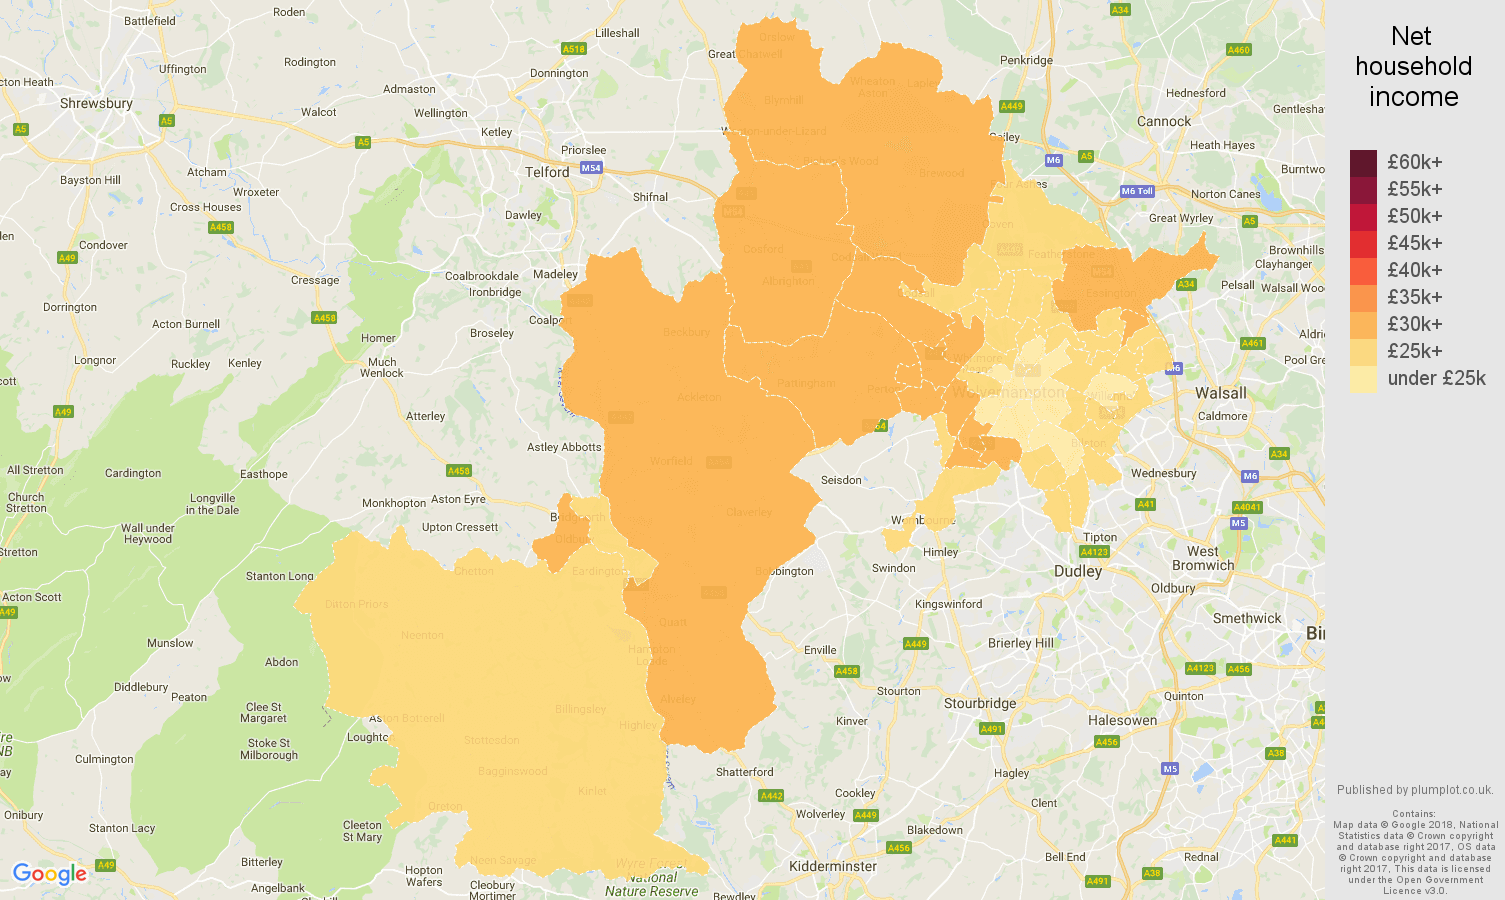 Wolverhampton net household income map